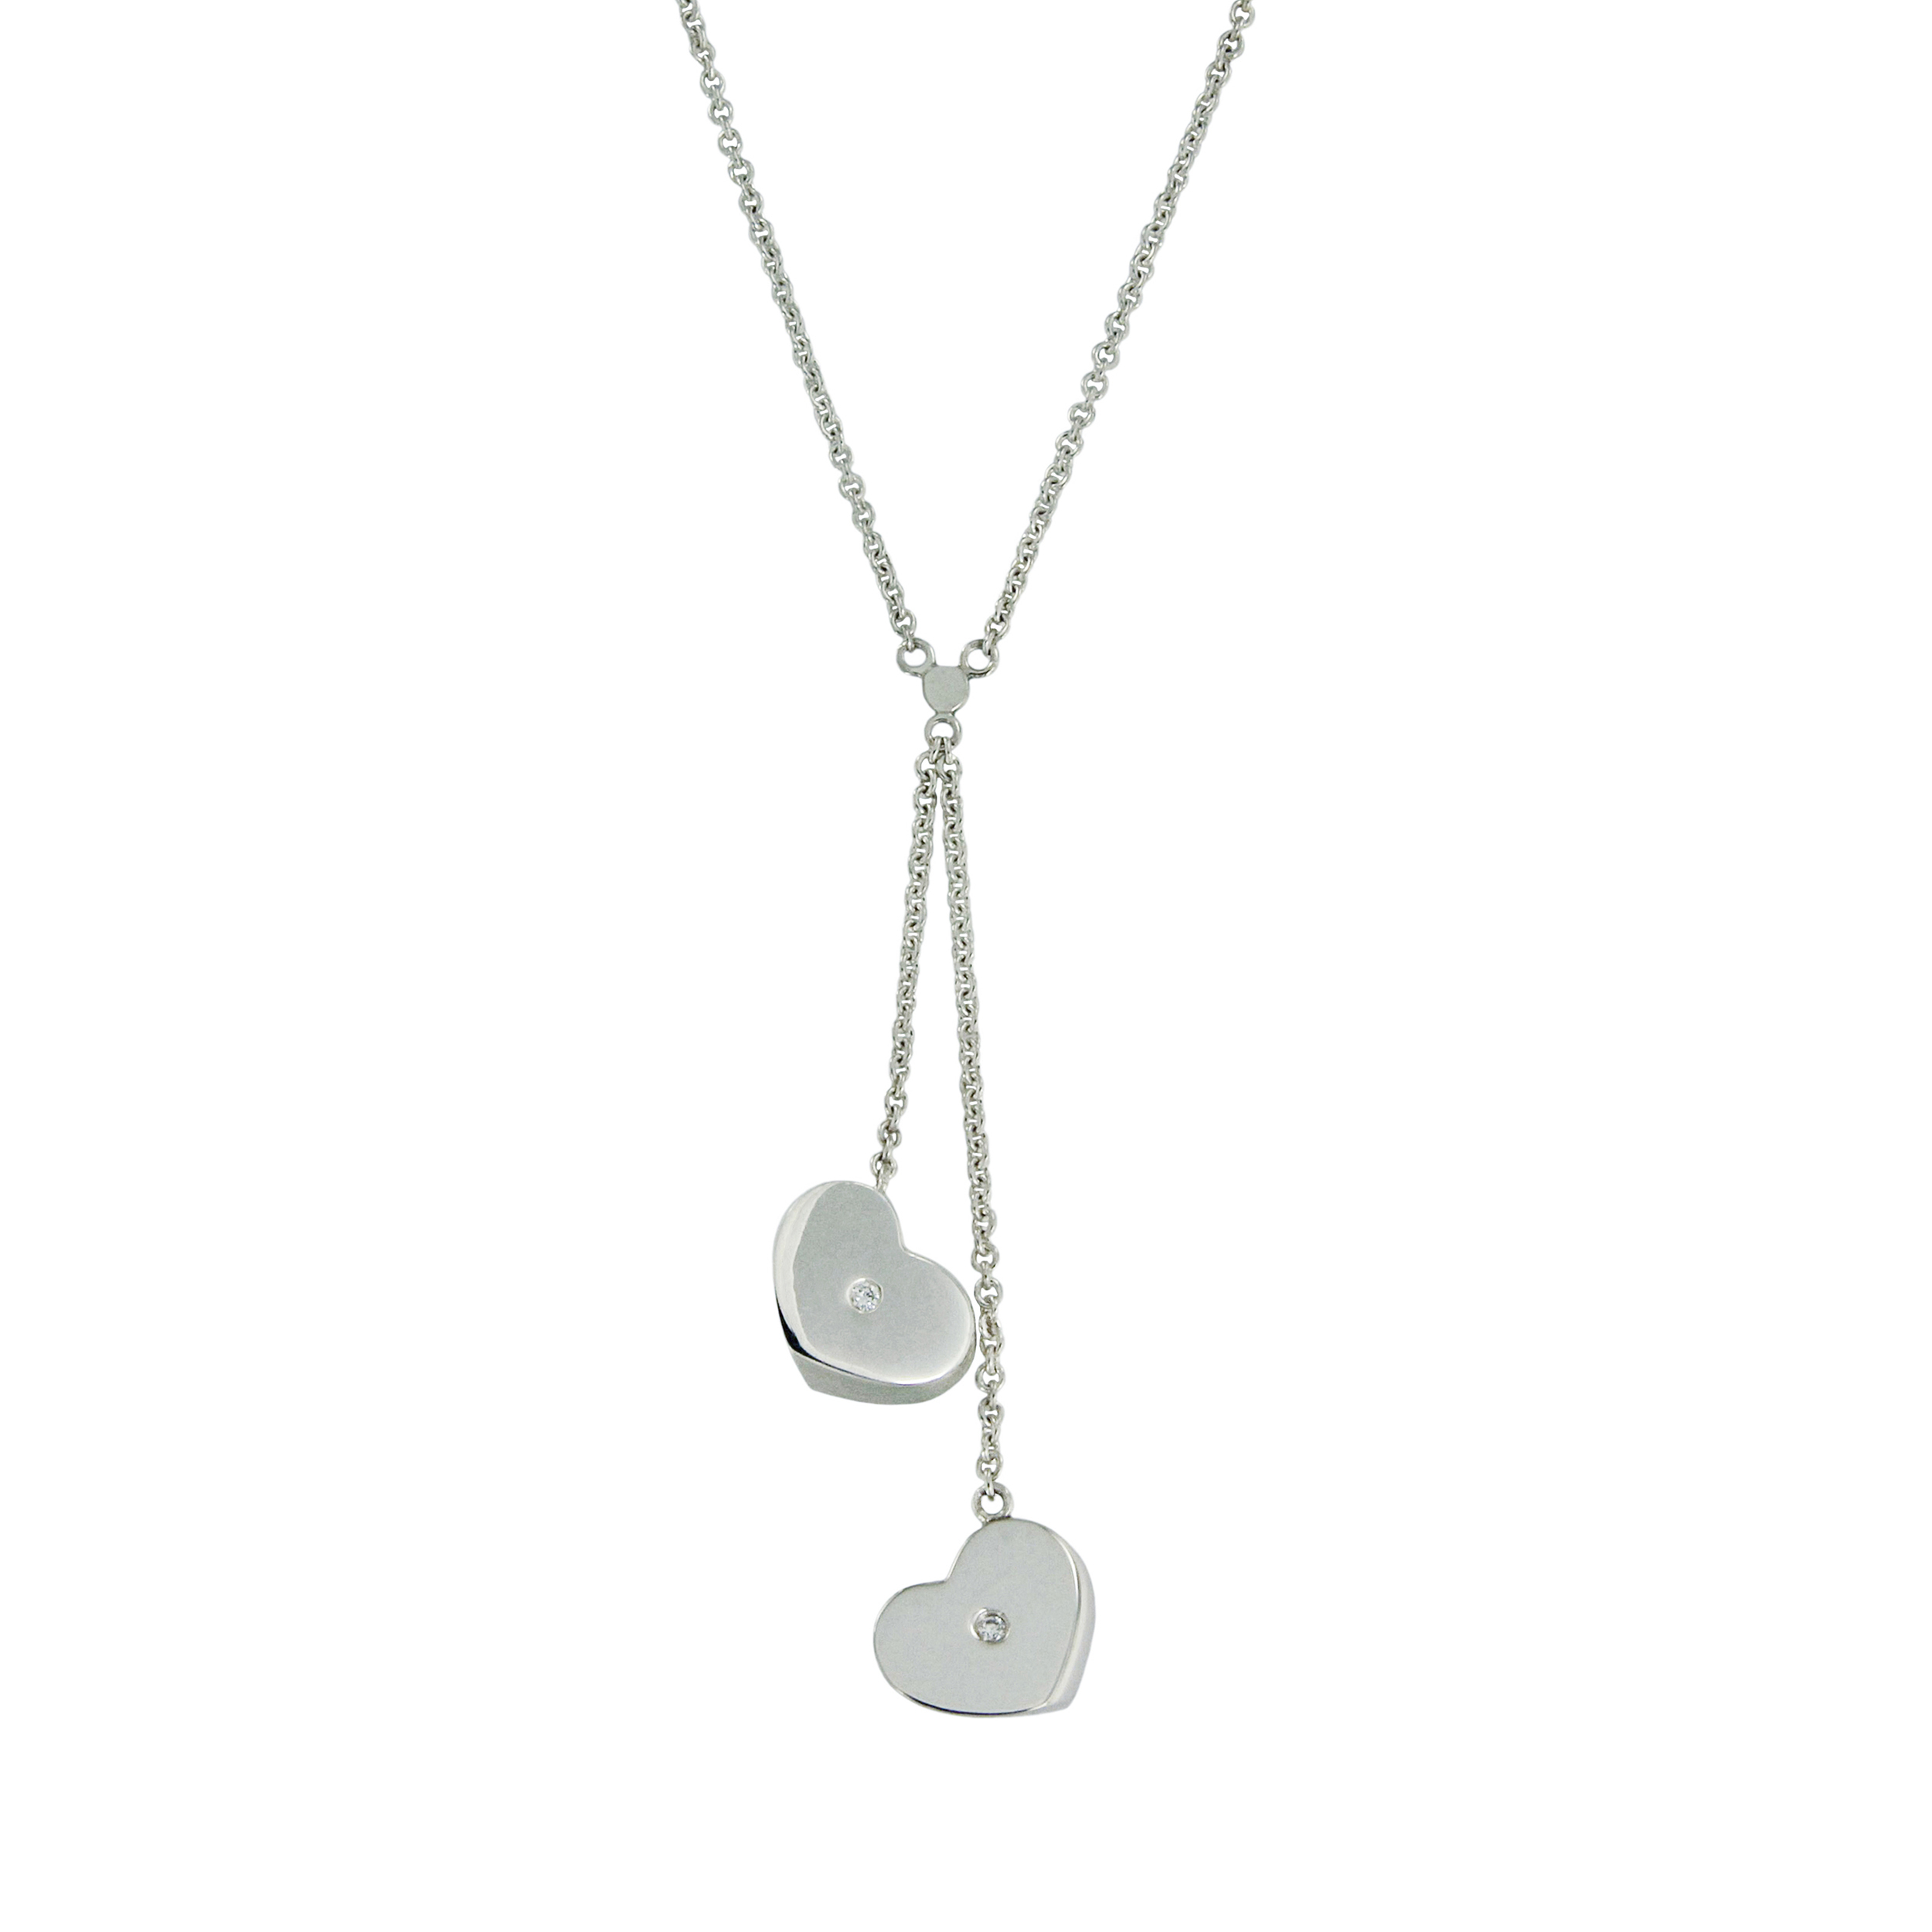 Tiffany Co Paloma Picasso Sterling Silver With Diamonds Modern Double Heart Drop Pendant Necklace Buy At Truefacet